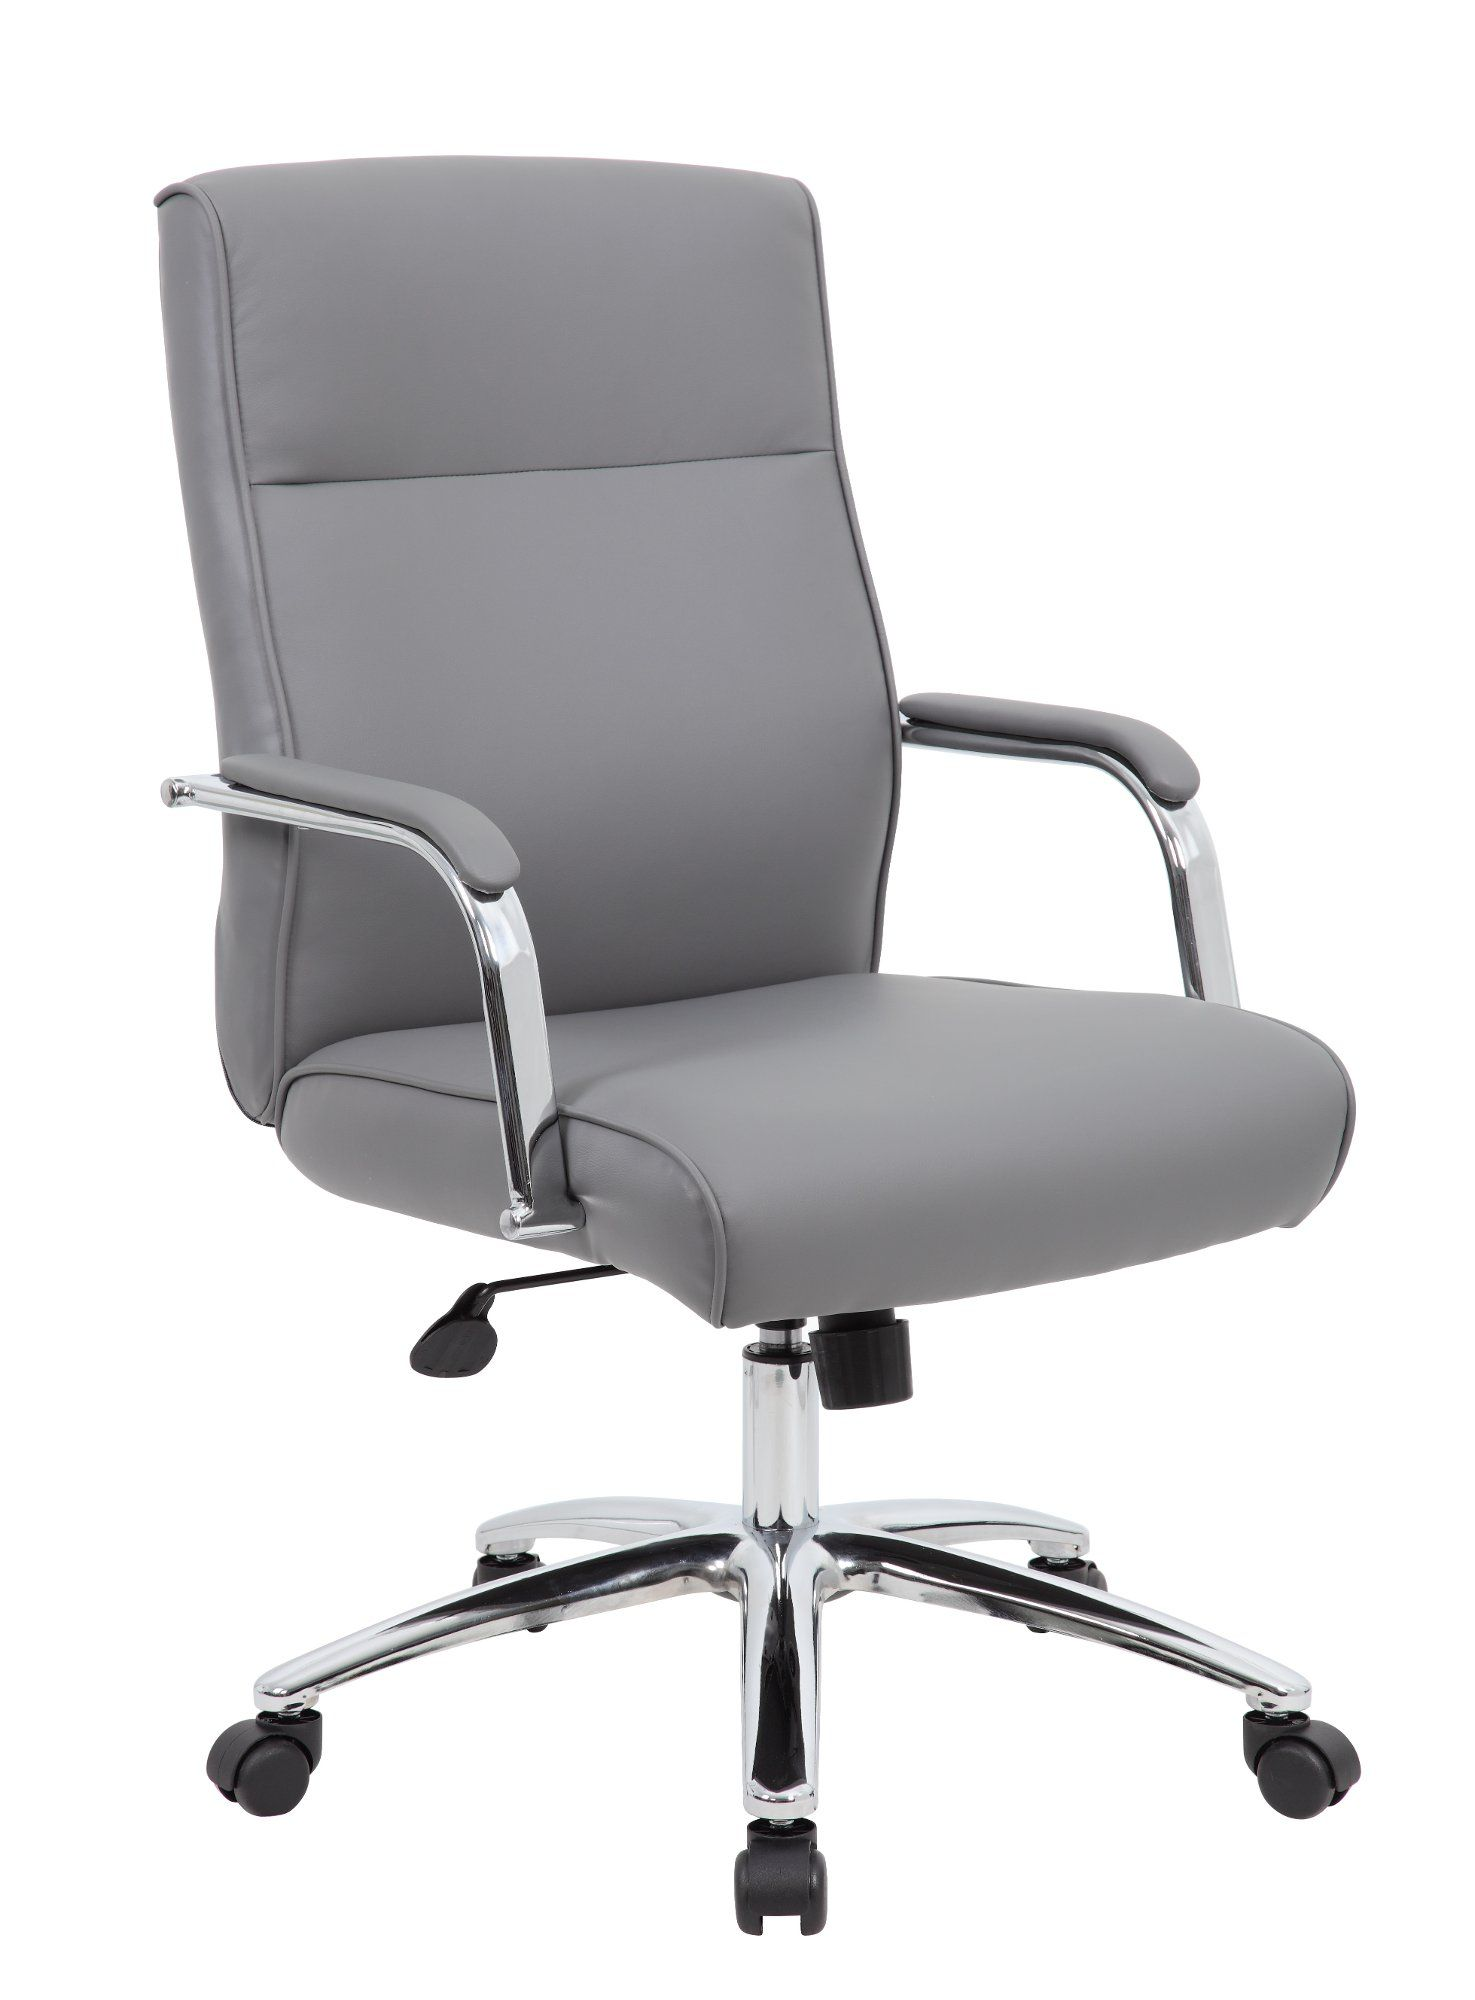 Gray Caresoft Vinyl Office Chair Modern Executive Series In 2020